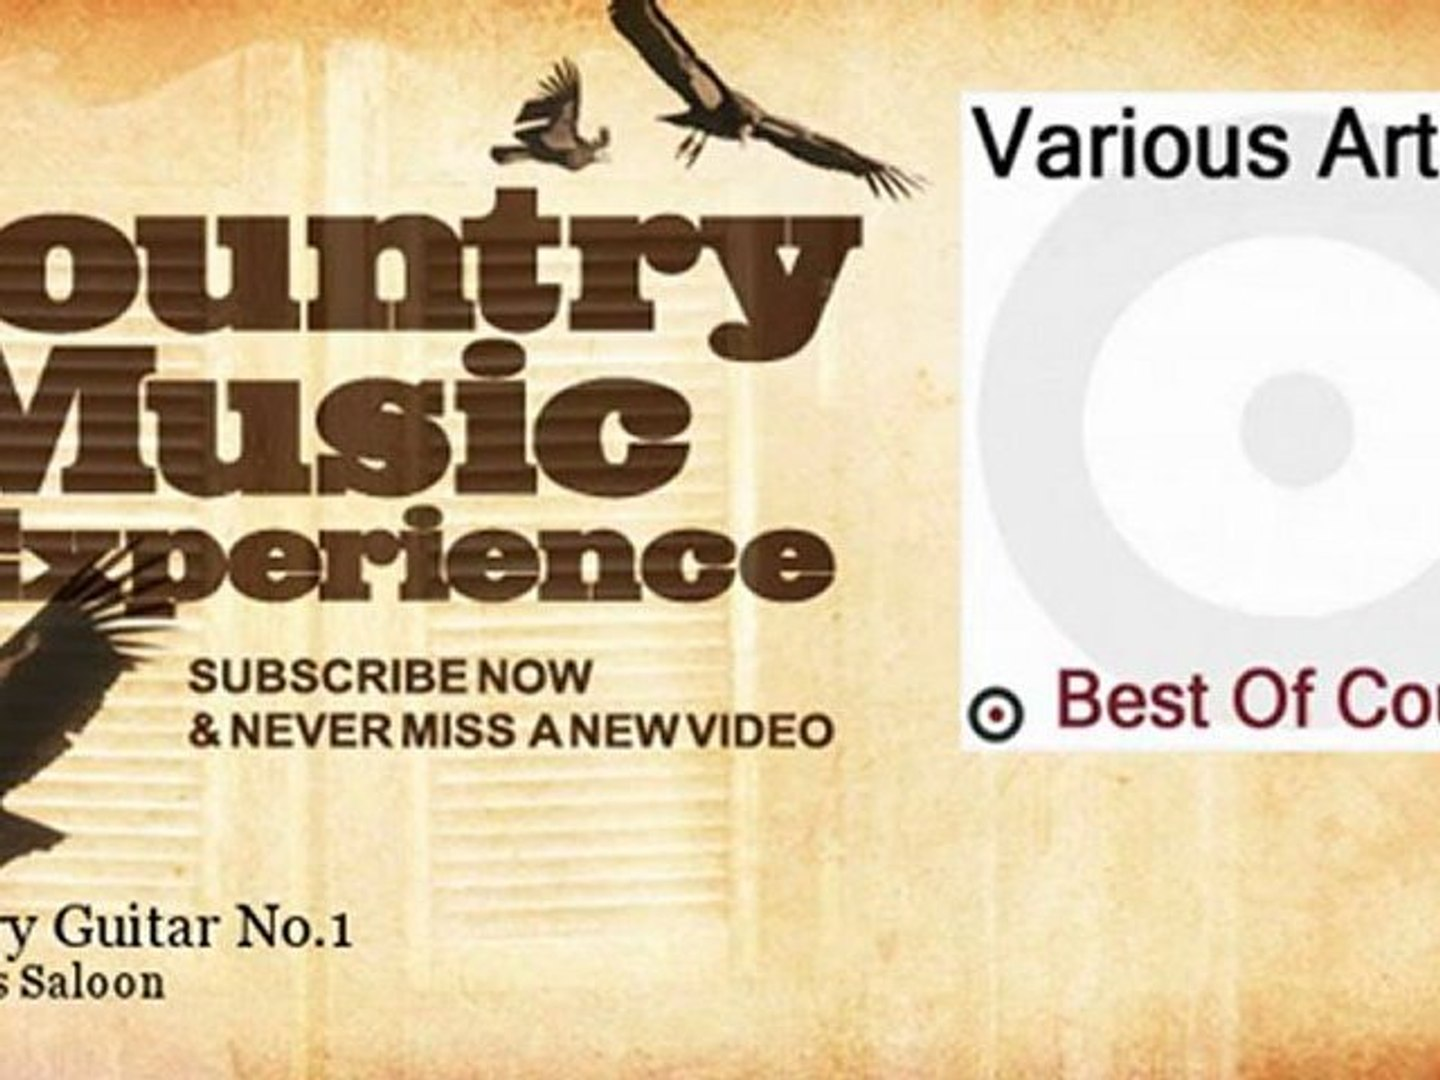 Sammy's Saloon - Country Guitar No.1 - Country Music Experience